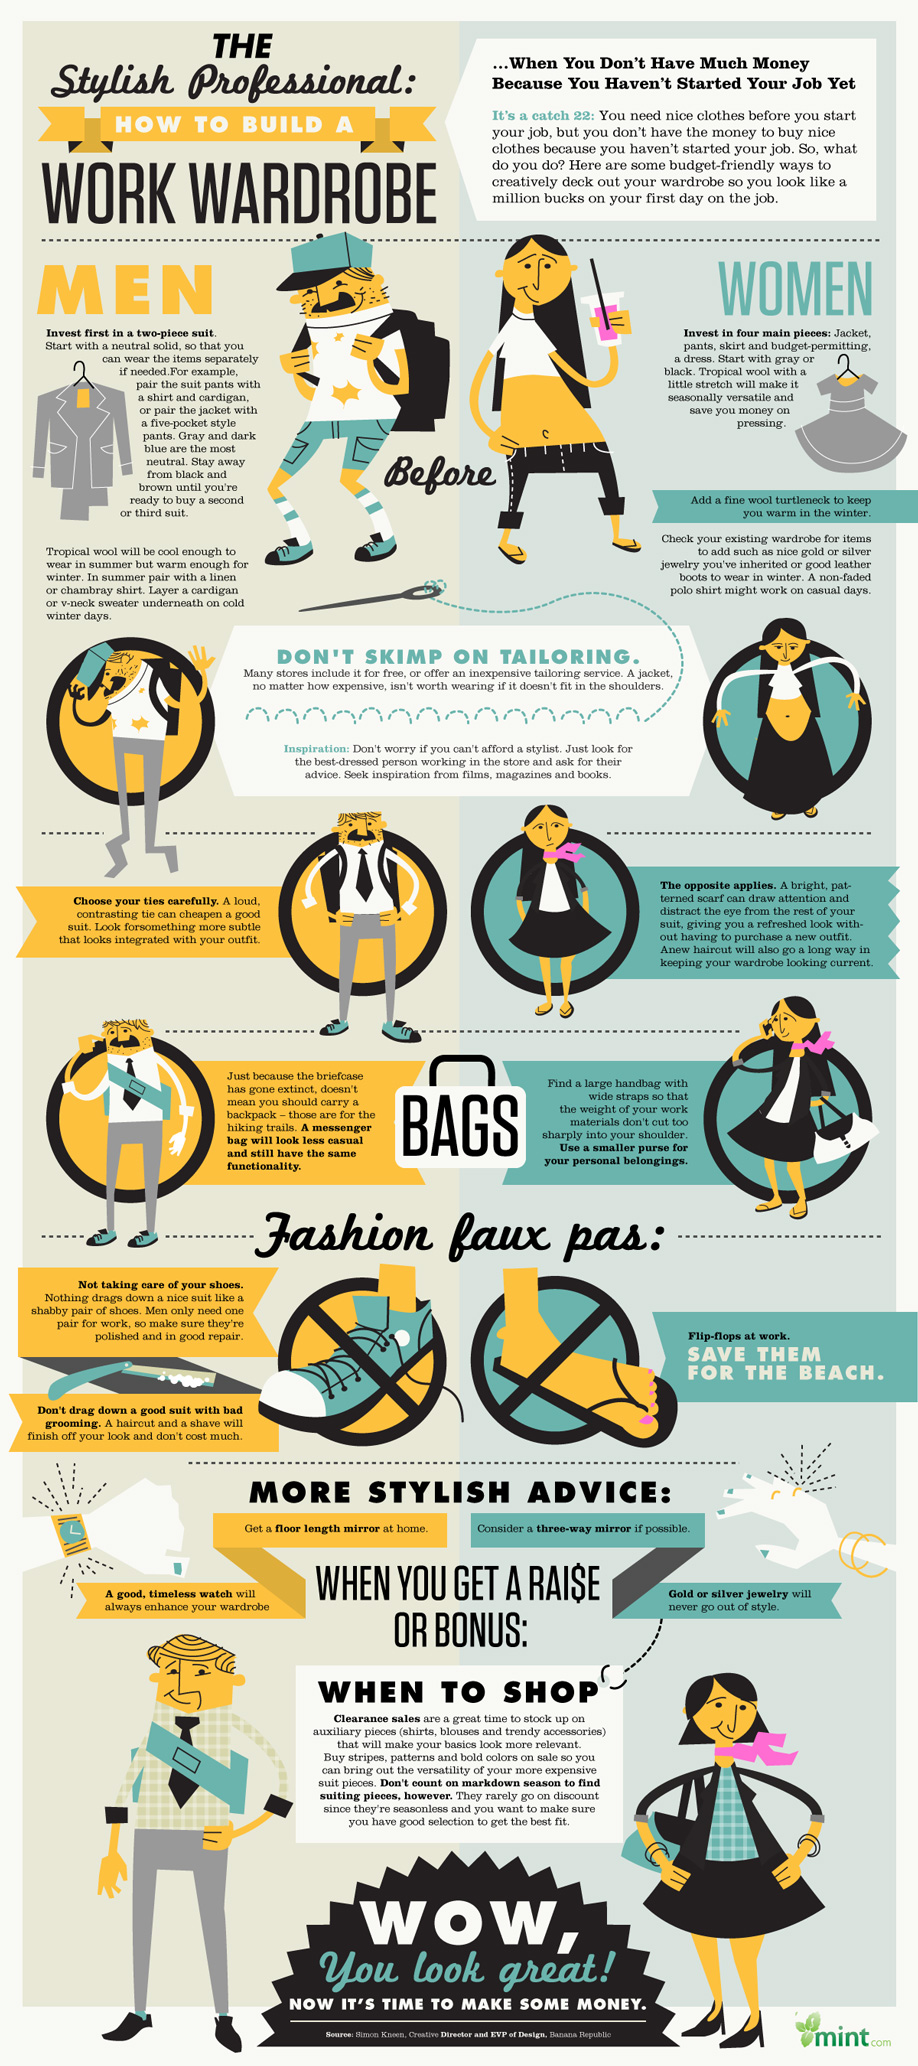 Make sure that you don't show up to your first day looking shabby, dress to impress with these easy tips to save money and look professional!